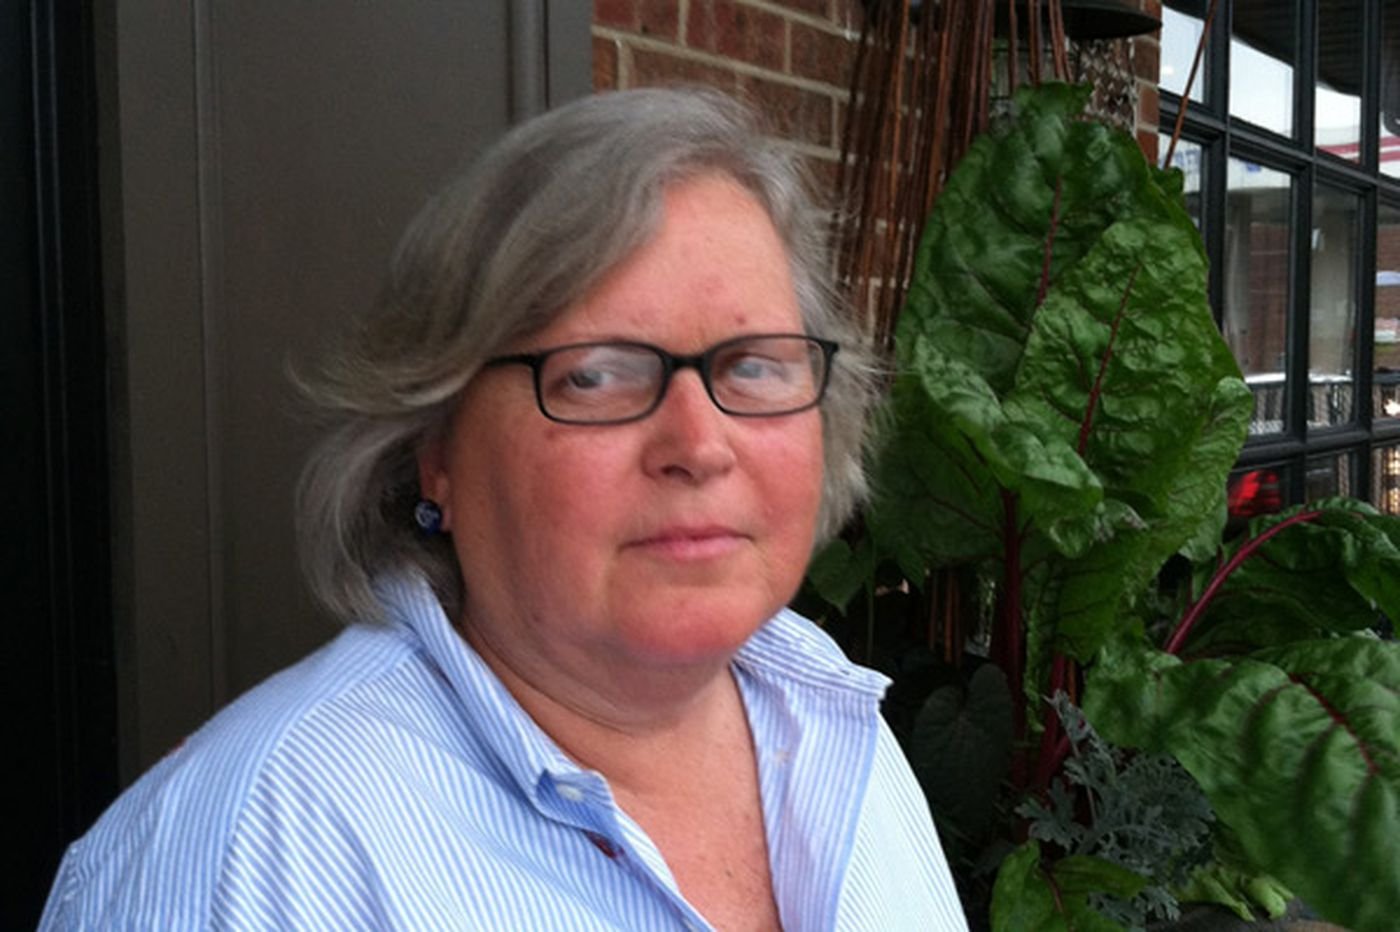 N.J. gay marriage would gratify early proponent